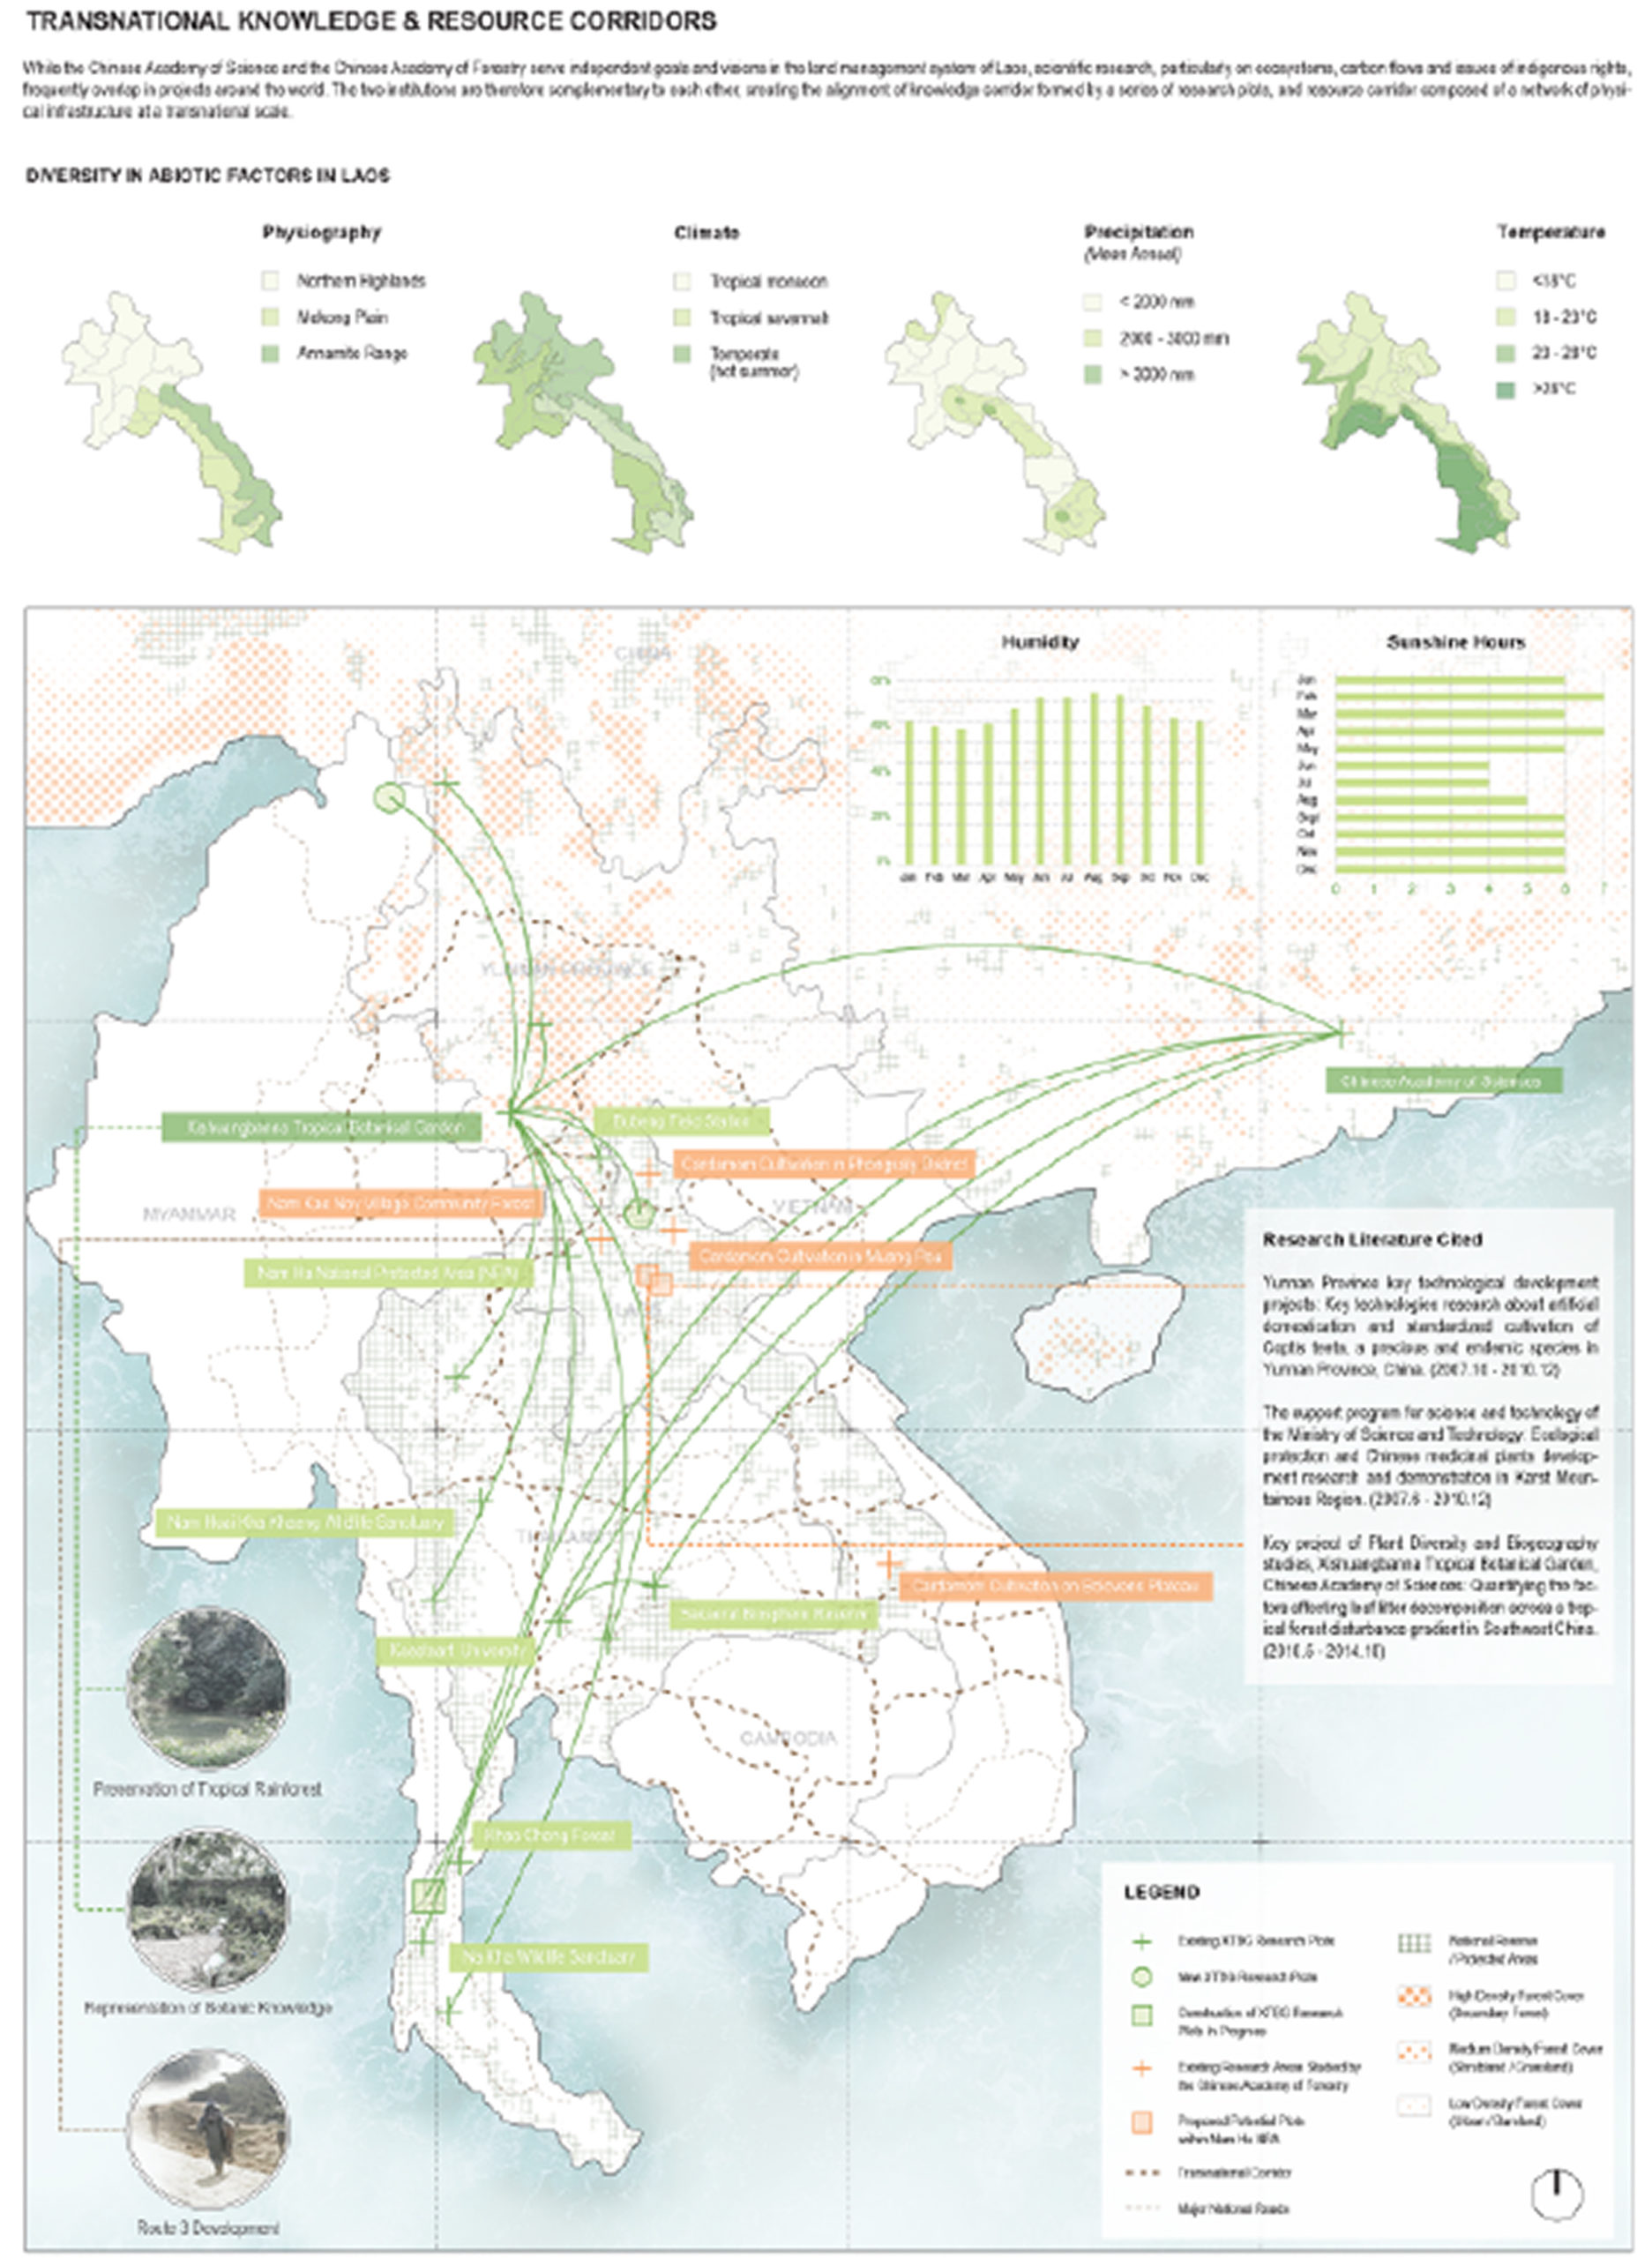 Enlarge Photo: The goals of two institutions are different from and complementary to each other, creating an alignment of a transnational knowledge corridor formed by research plots and a resource corridor. By CHAN Syl Yeng Michelle, WONG Wae Ki Sammi.